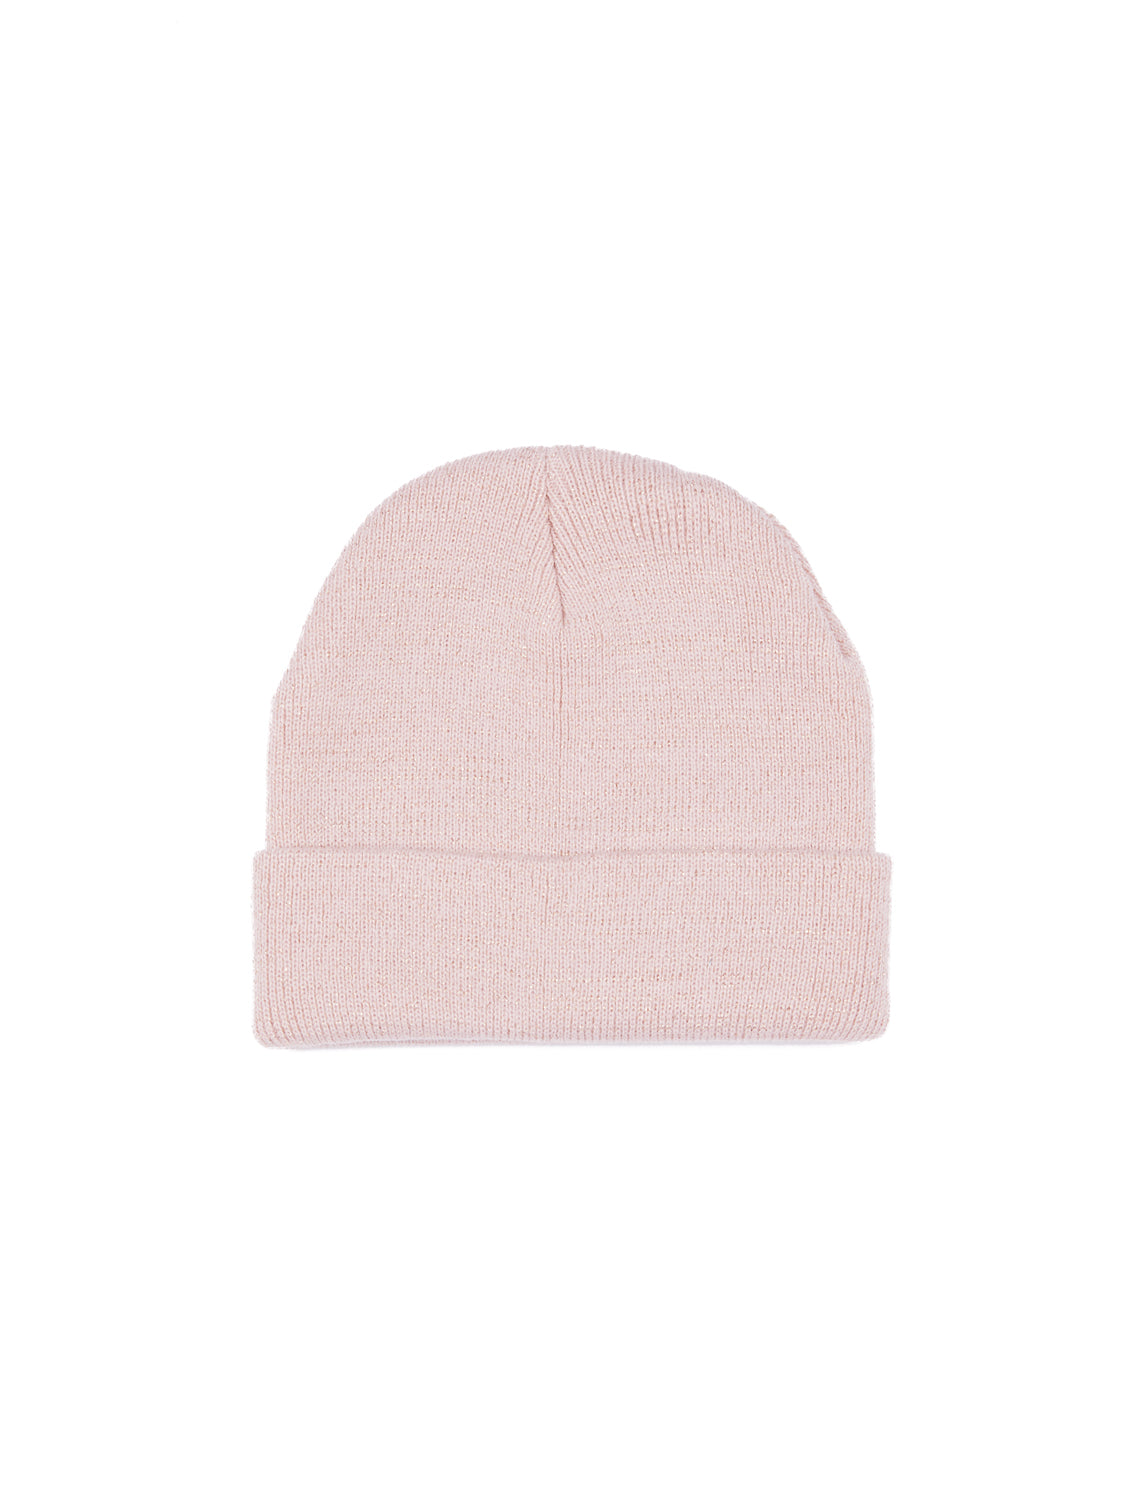 Lurex Fold Over Tuque